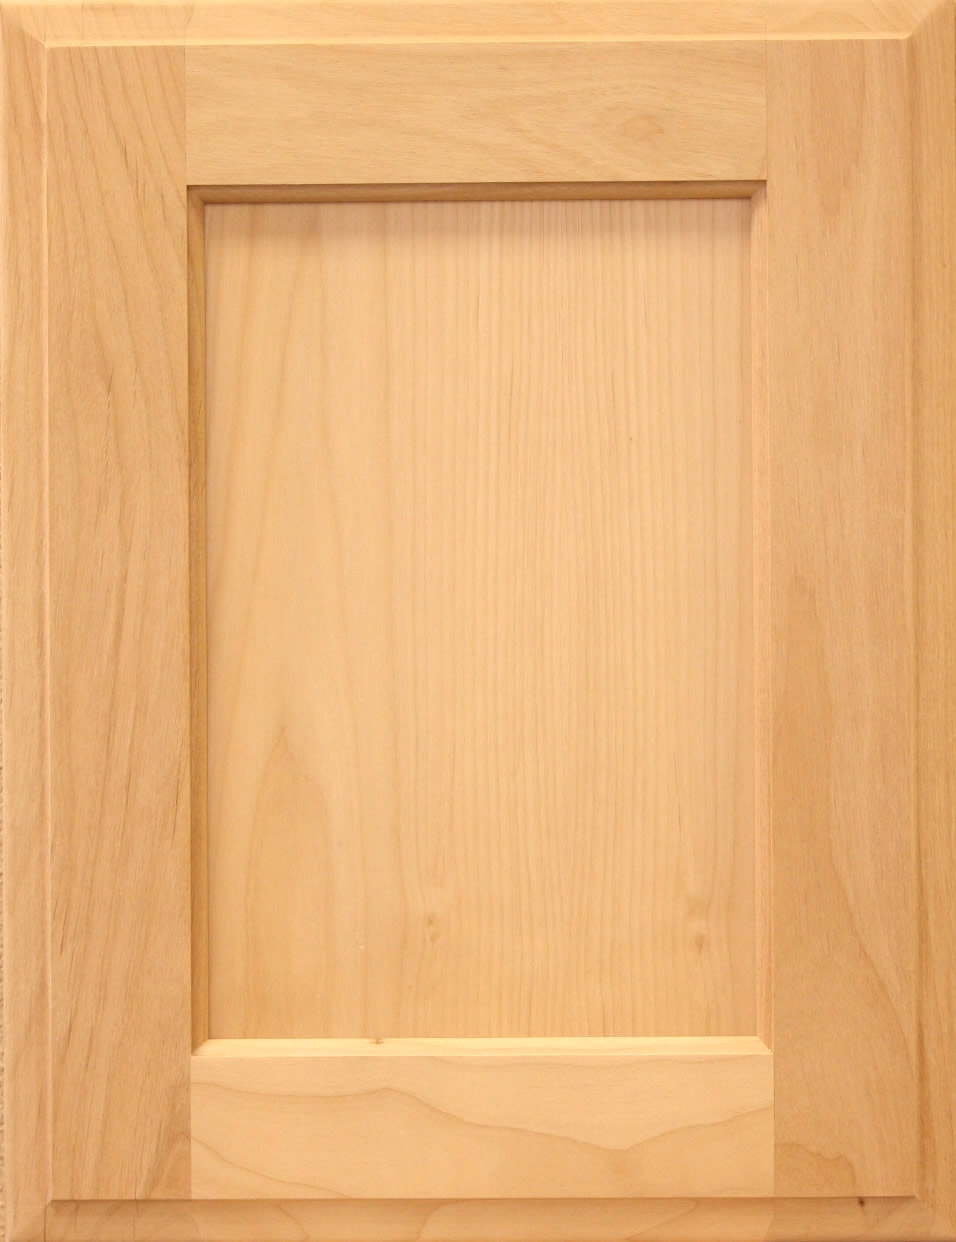 Philadelphia Unfinished Cabinet Doors Inset Panel Larger Photo Email A Friend